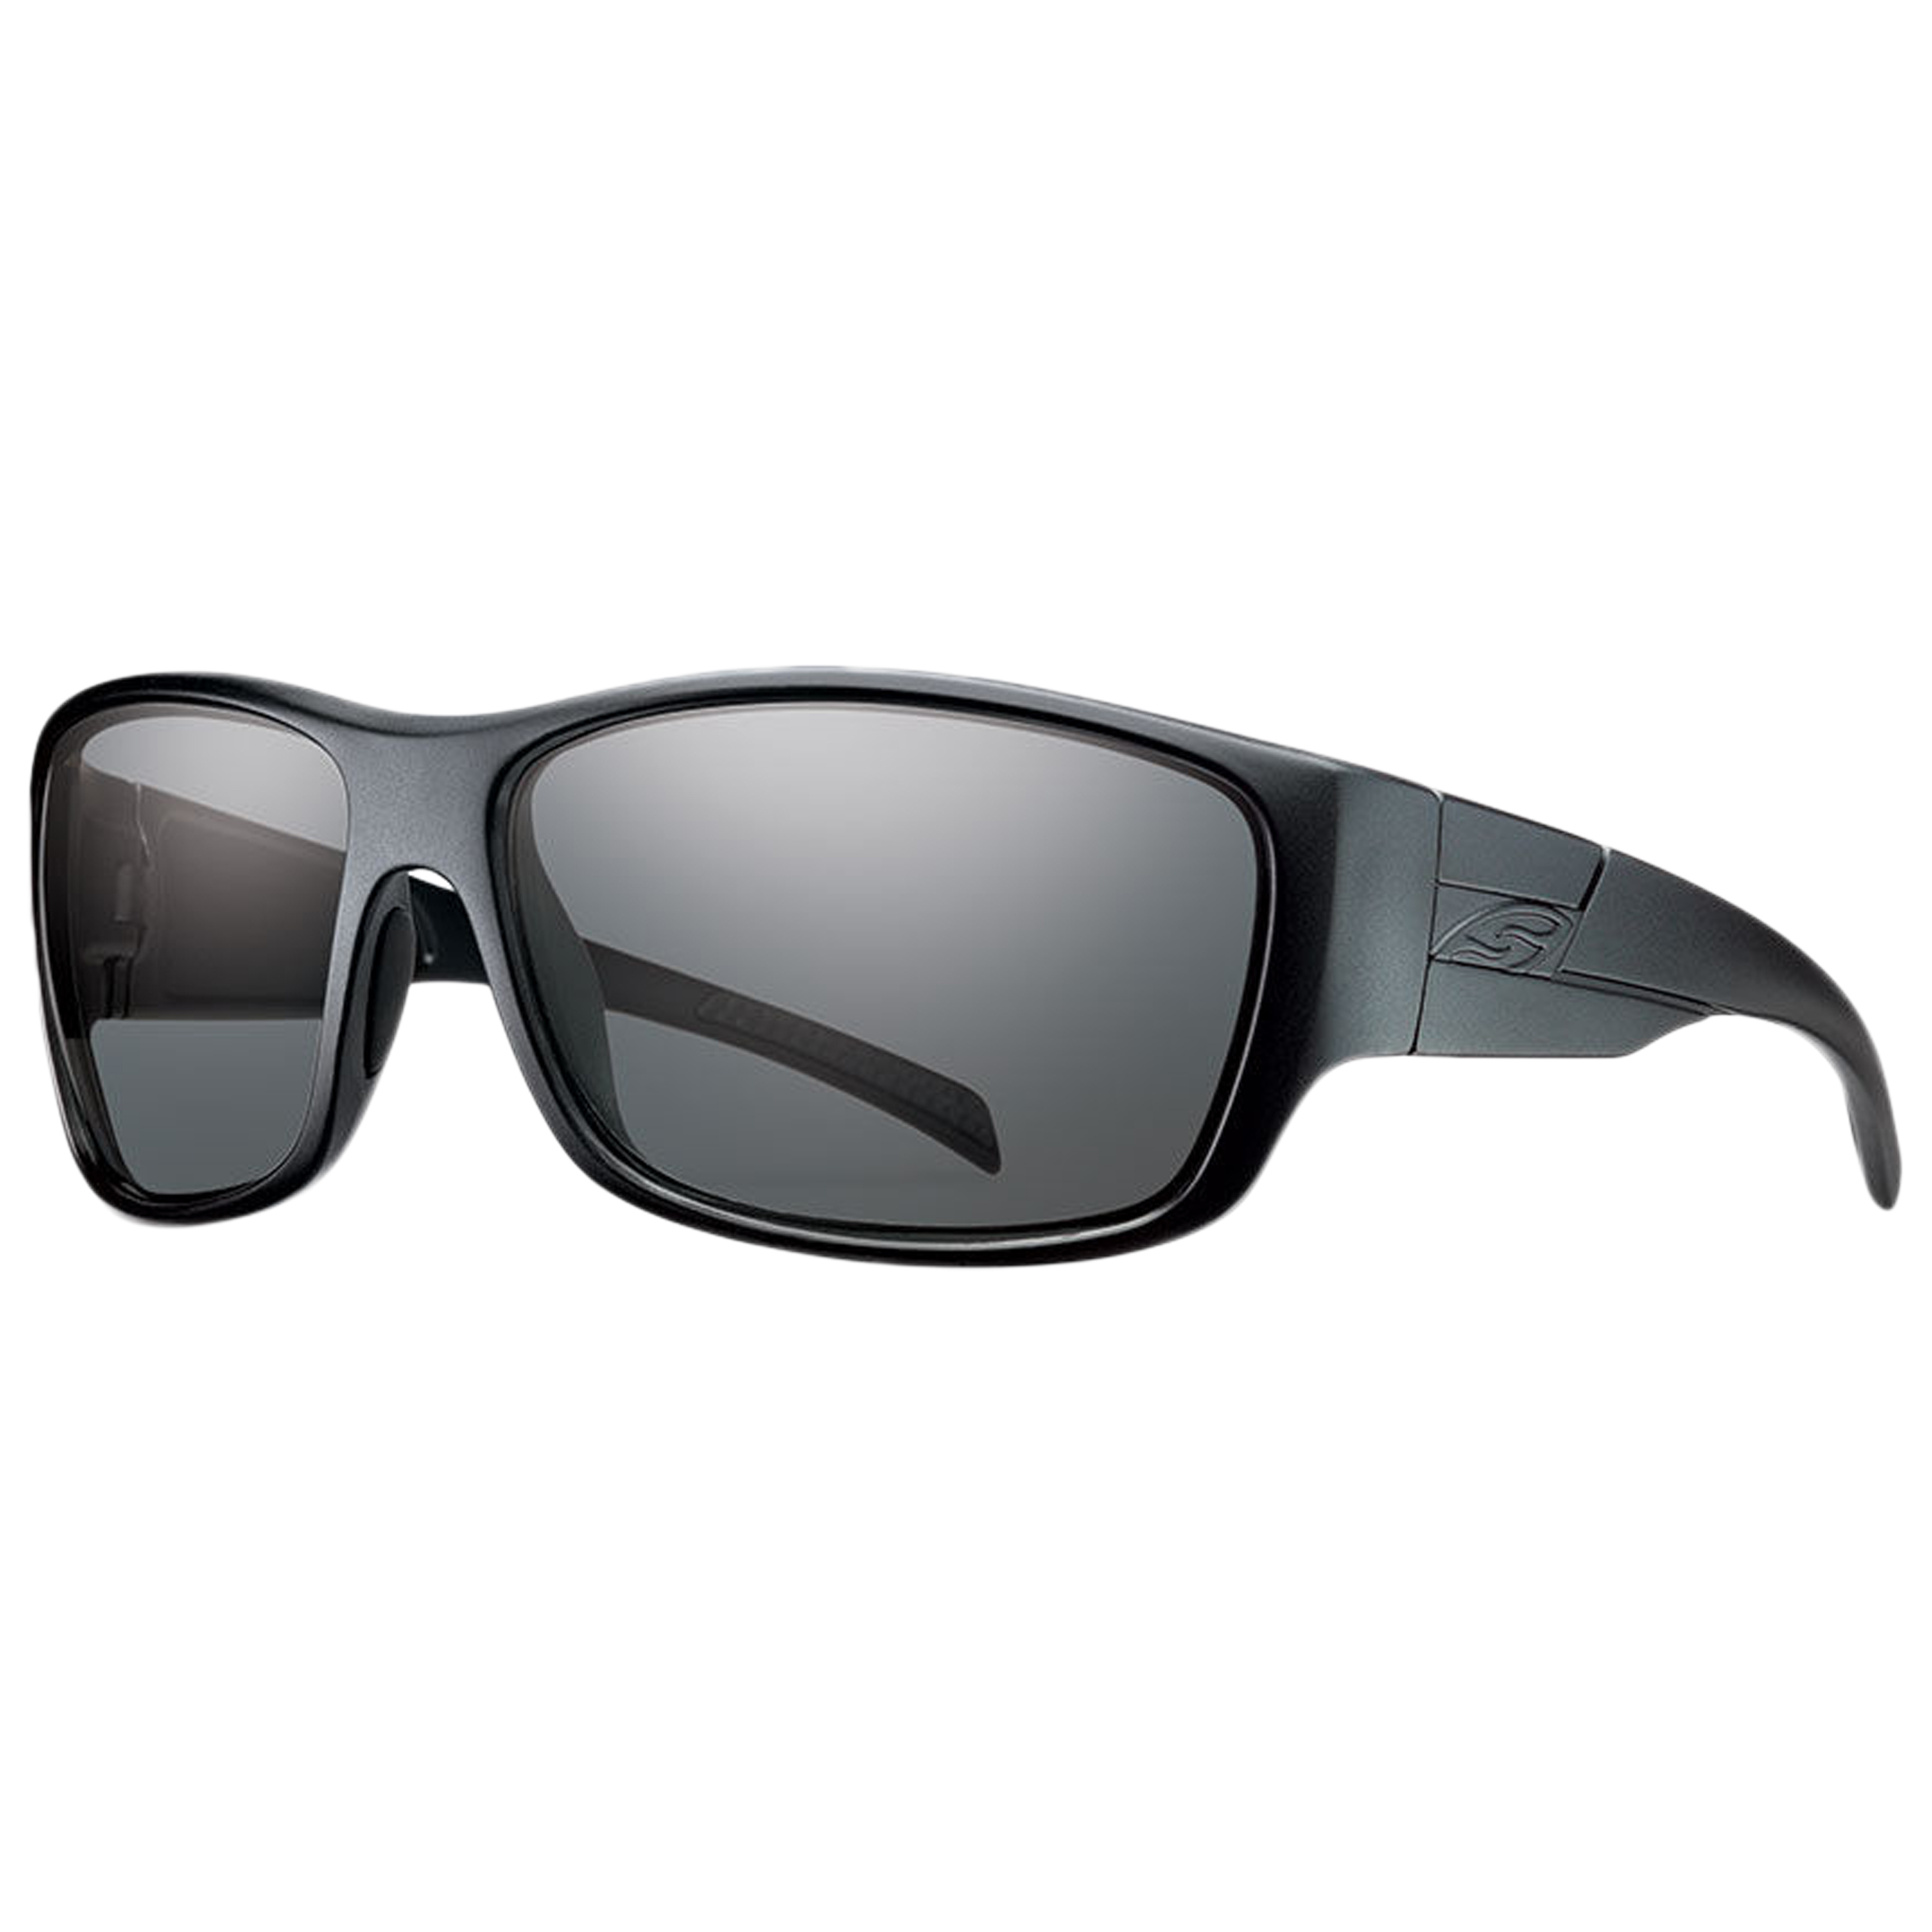 Smith Optics Glasses Frontman Elite black/gray